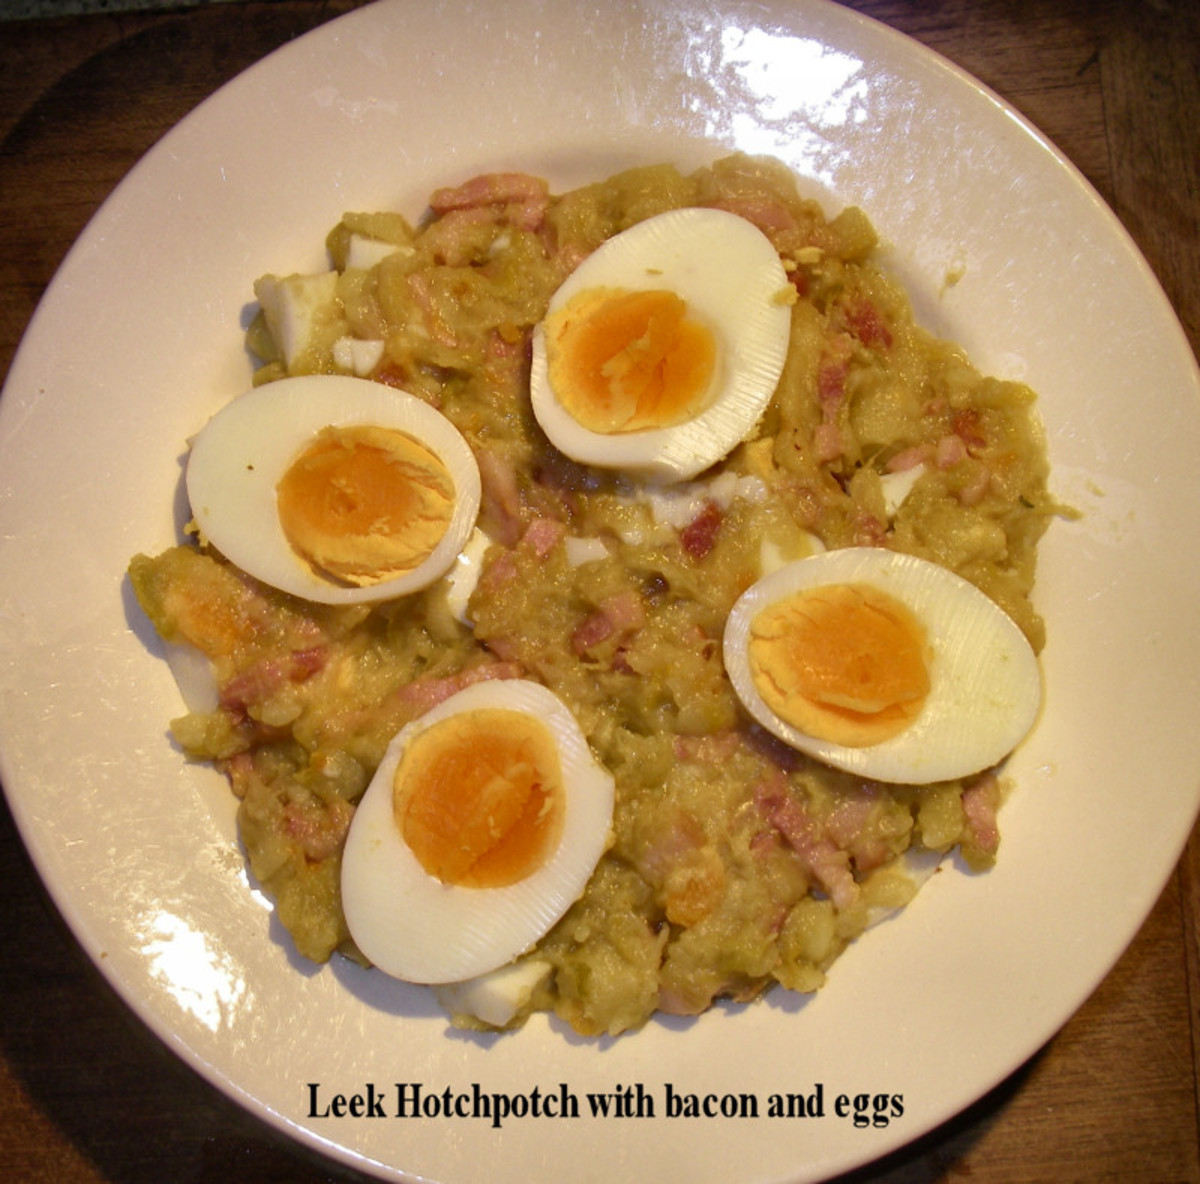 Leek Hotchpotch with eggs and diced bacon